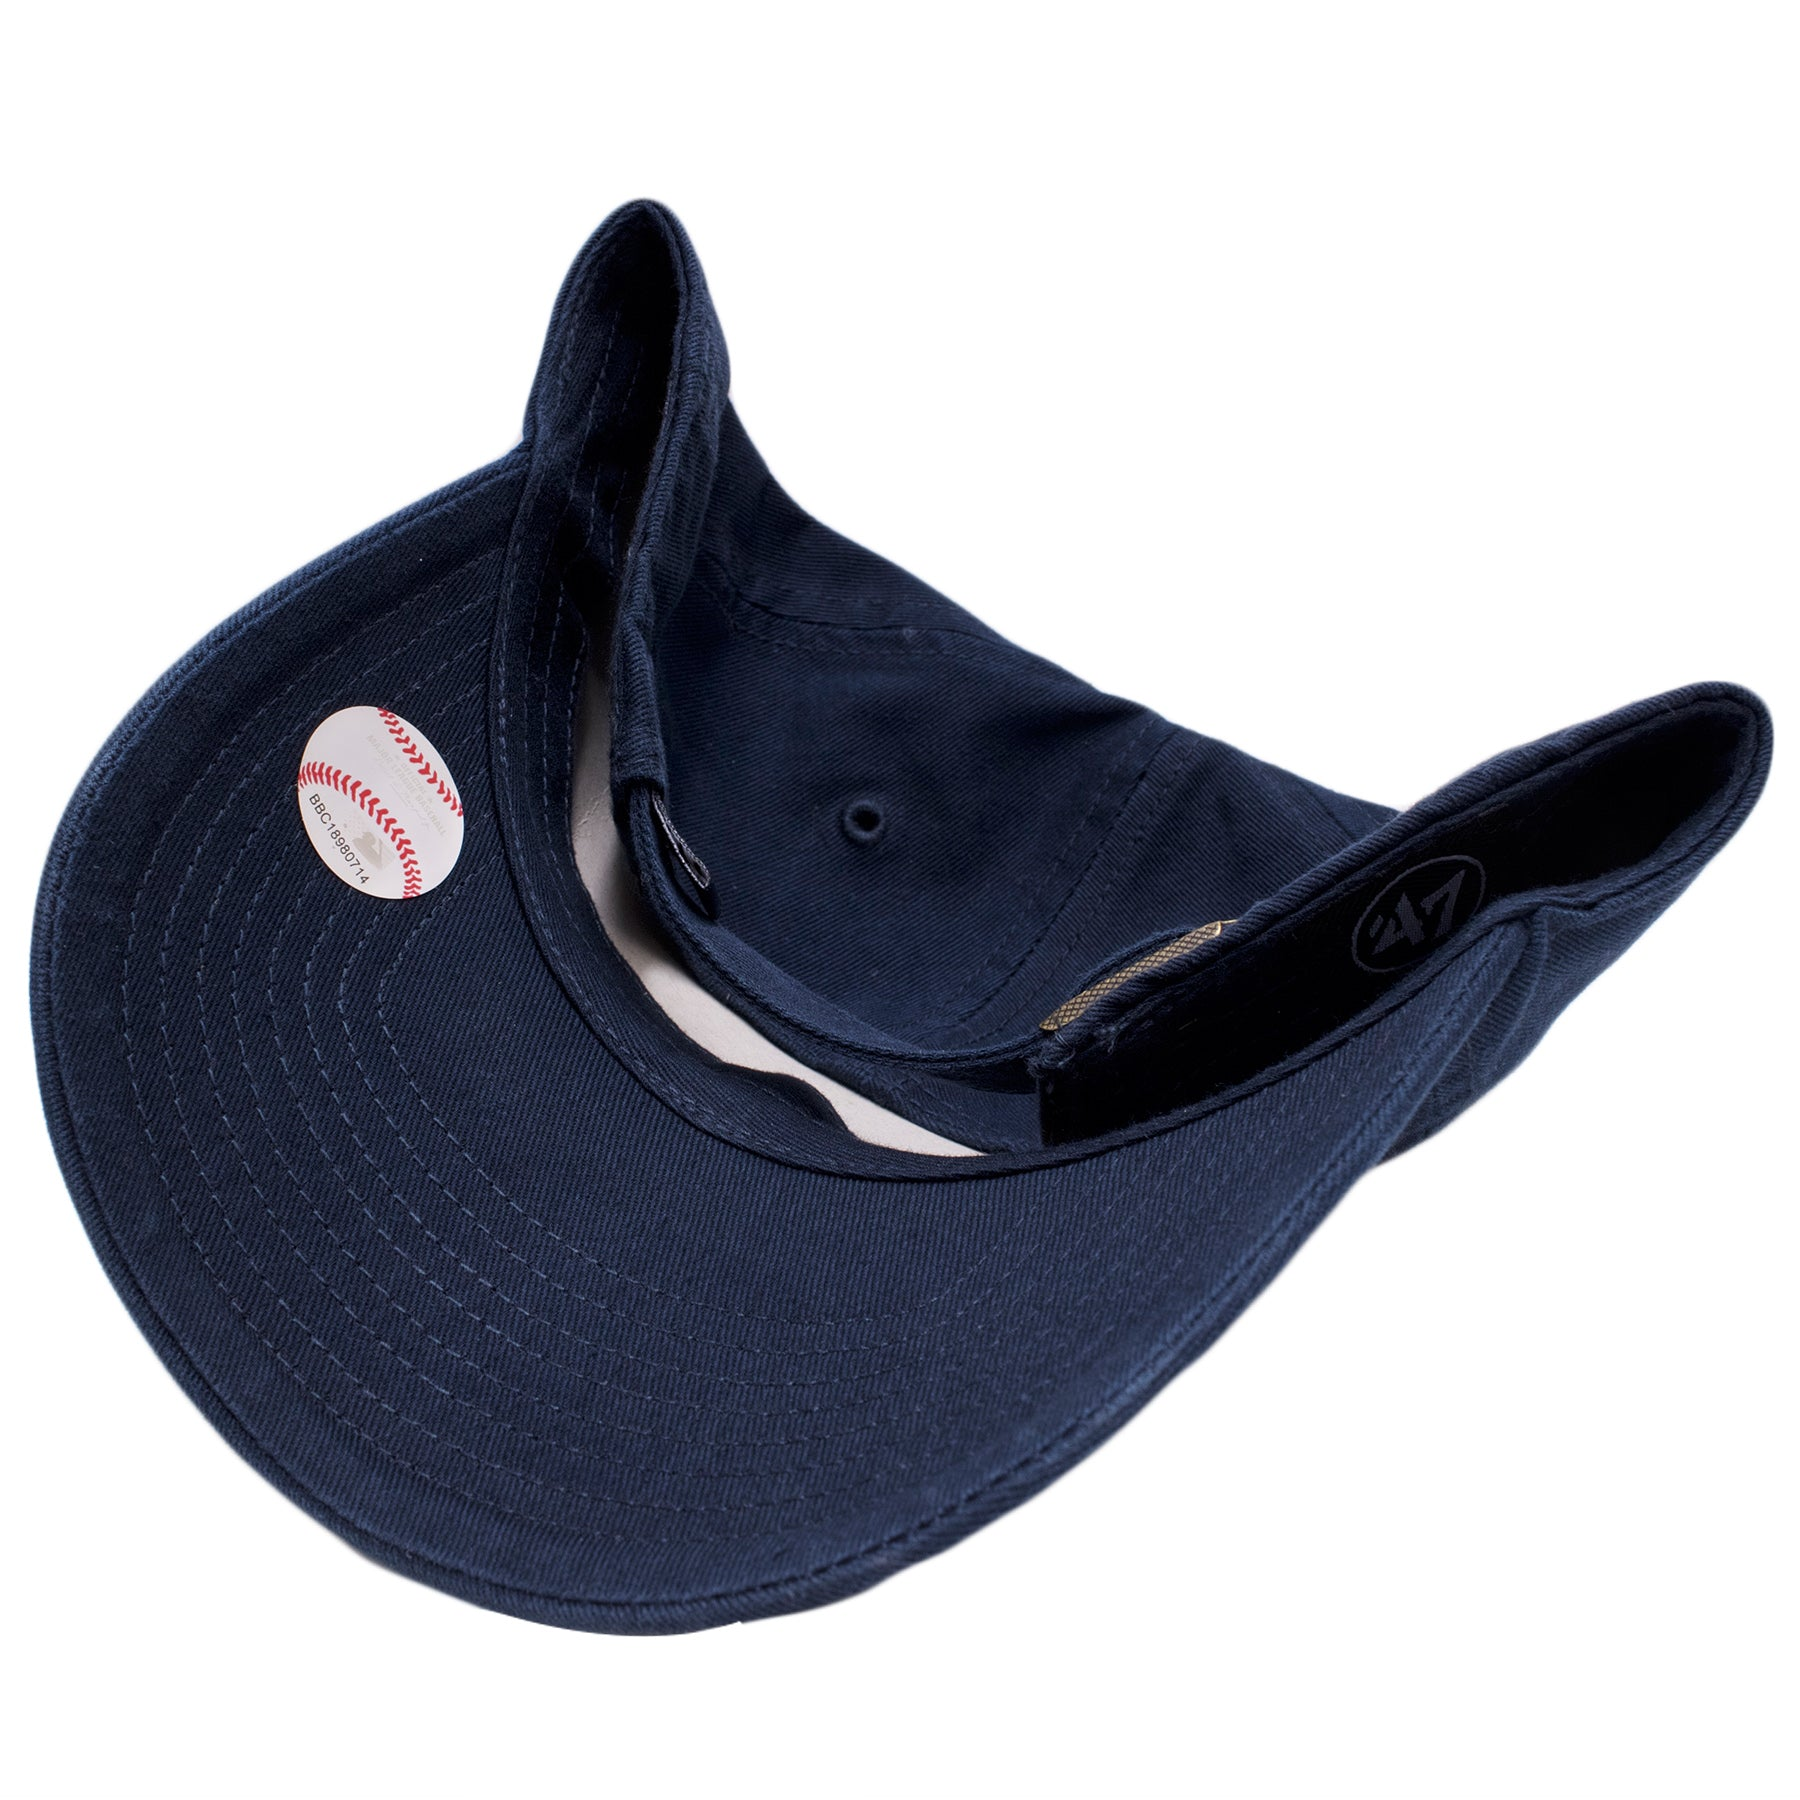 ... the under brim of the navy blue new york yankees vintage dad hat is  navy blue 9ec8de8510db